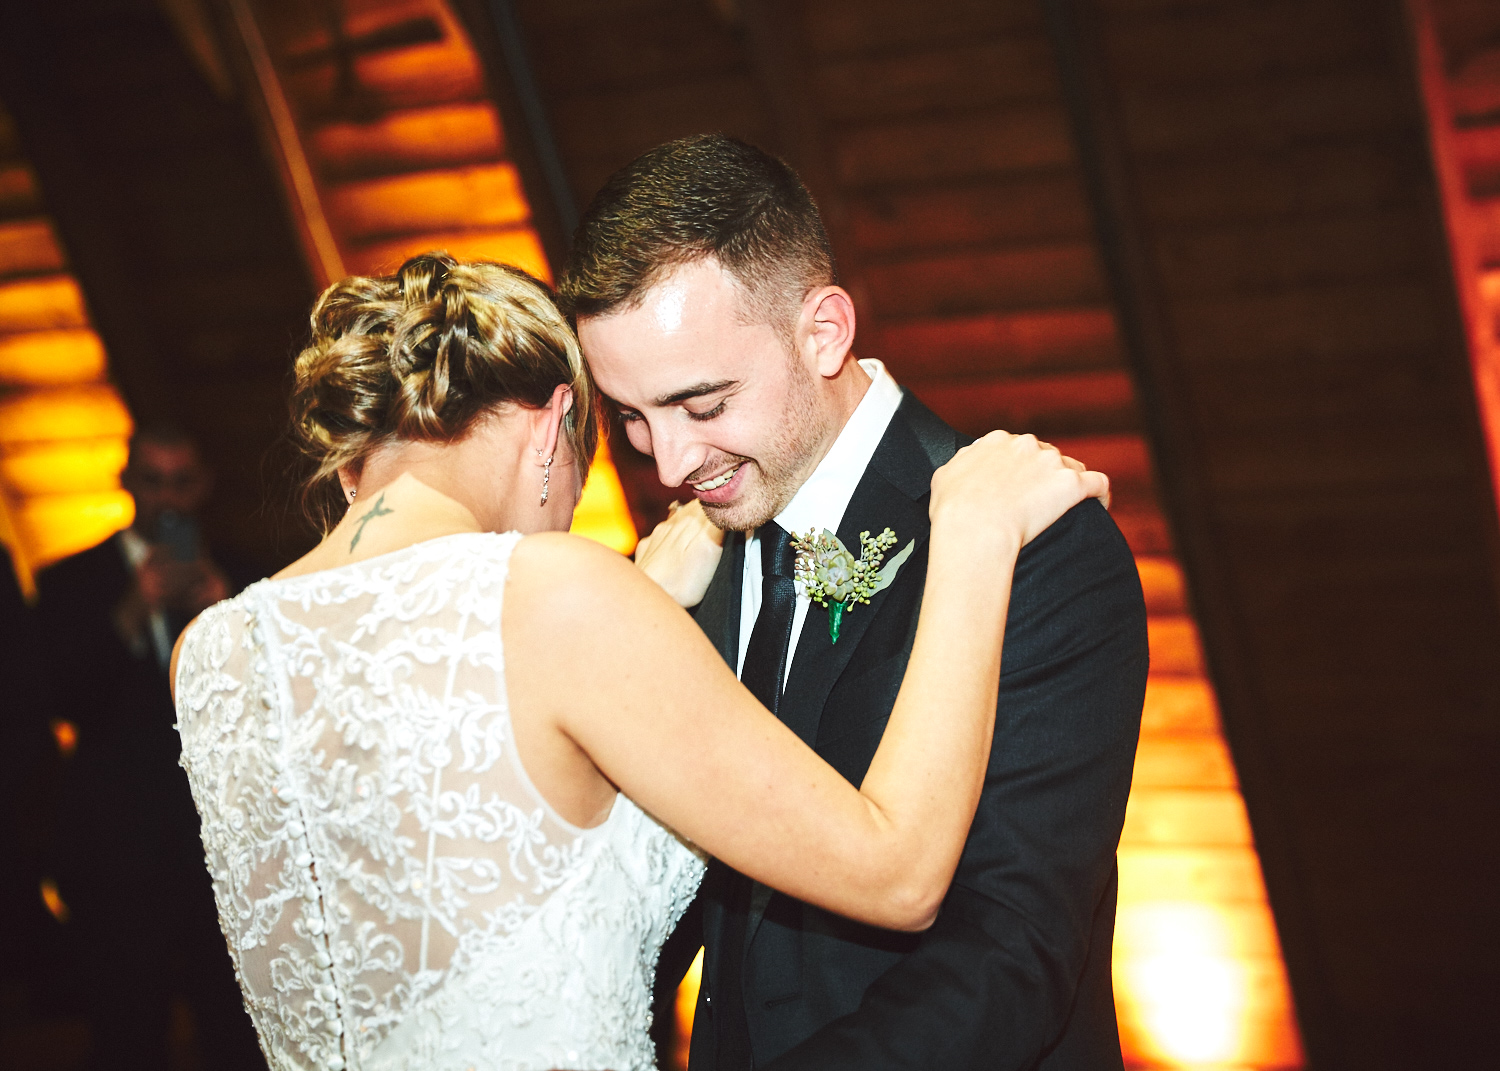 161013__T&J__PeronaFarmsWedding_By_BriJohnsonWeddings_0095.jpg